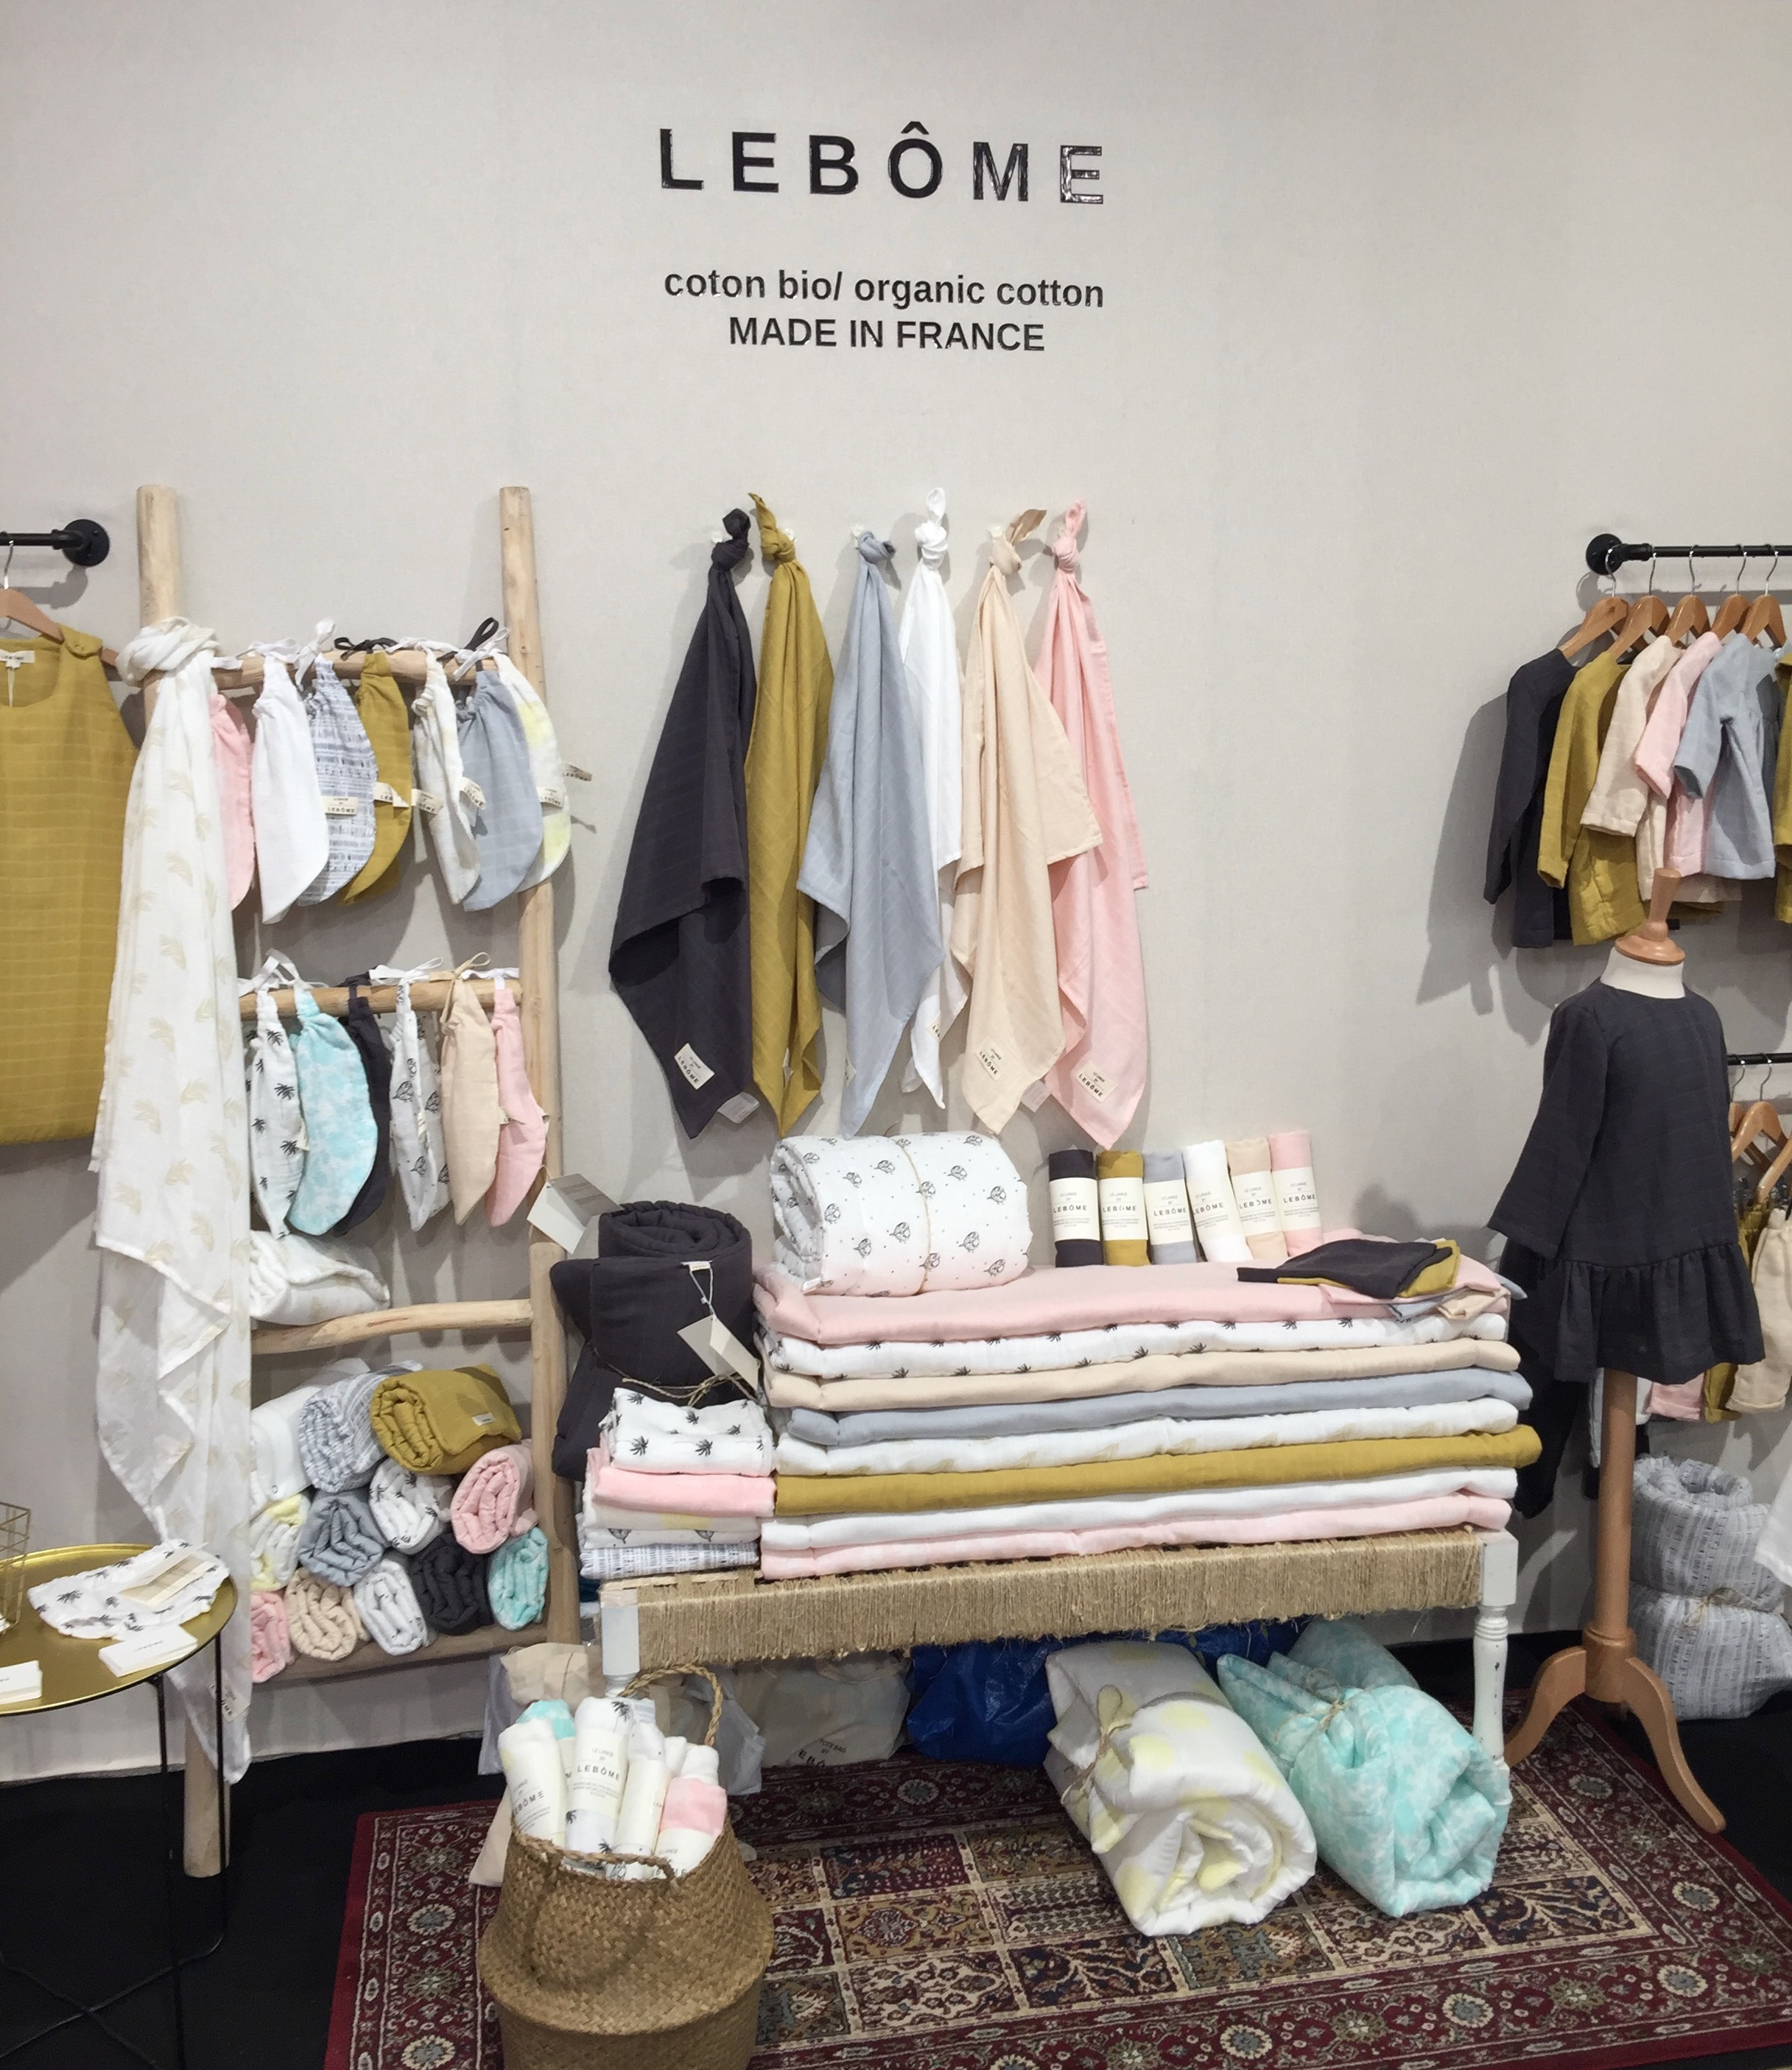 lebôme playtime paris salon professionel coton bio prganic cotton